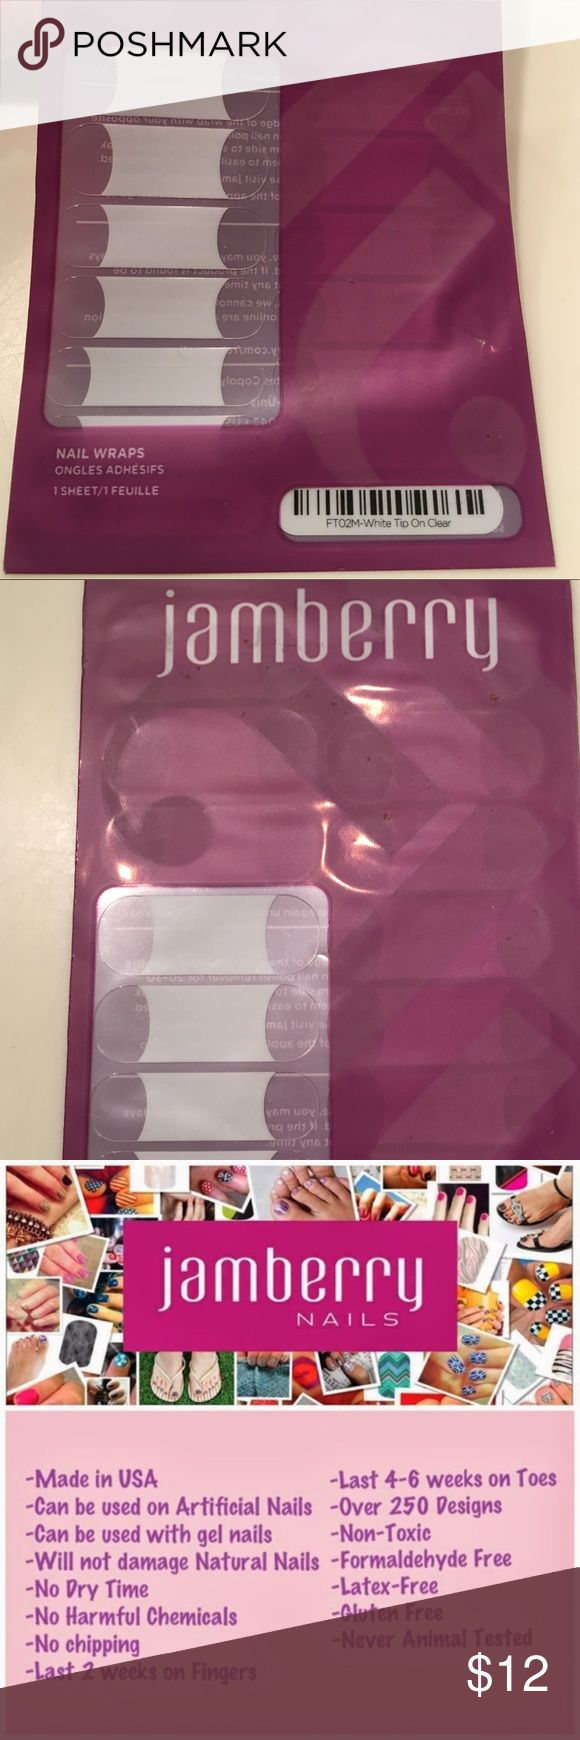 Jamberry full set French white tip The classic French tip look, this clear wrap features a white tip. Jamberry Makeup